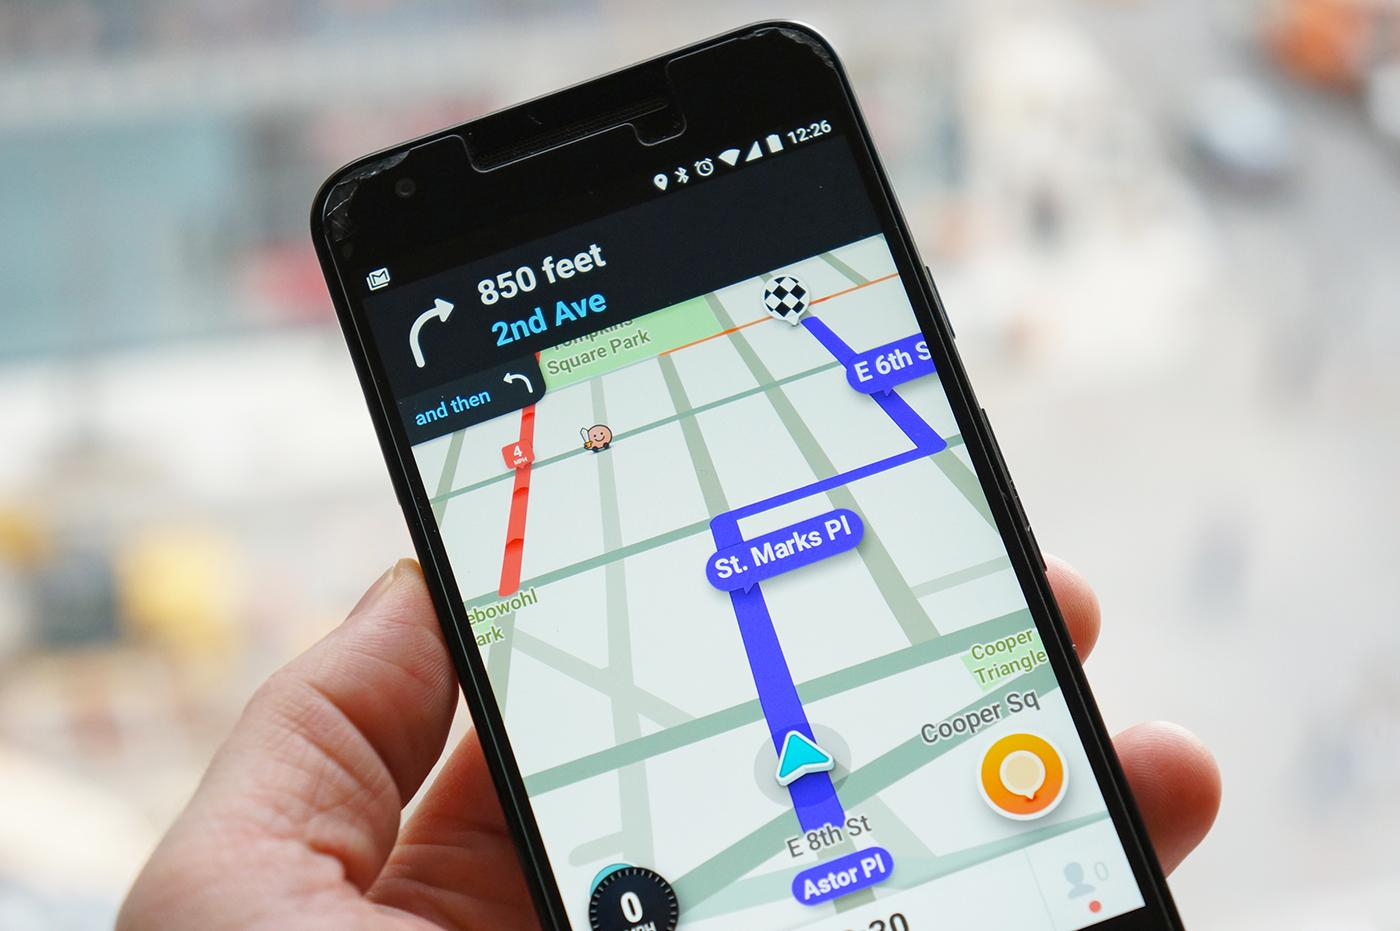 Waze S Crowd Sourced Traffic Info Comes To Ford Sync 3 Cars Engadget